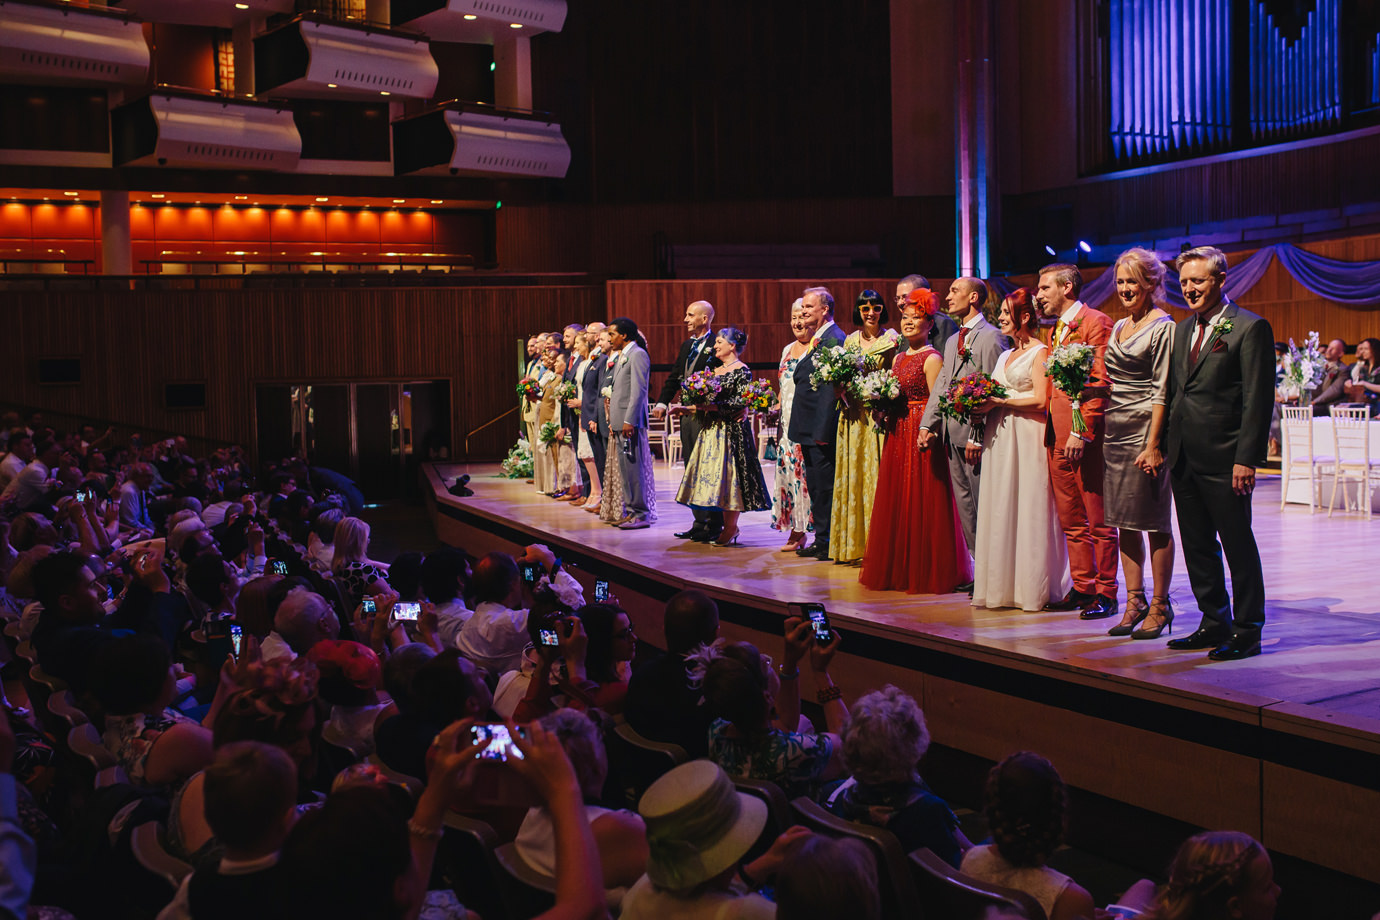 Married couples on stage, Festival of Love, Royal Festival Hall, London